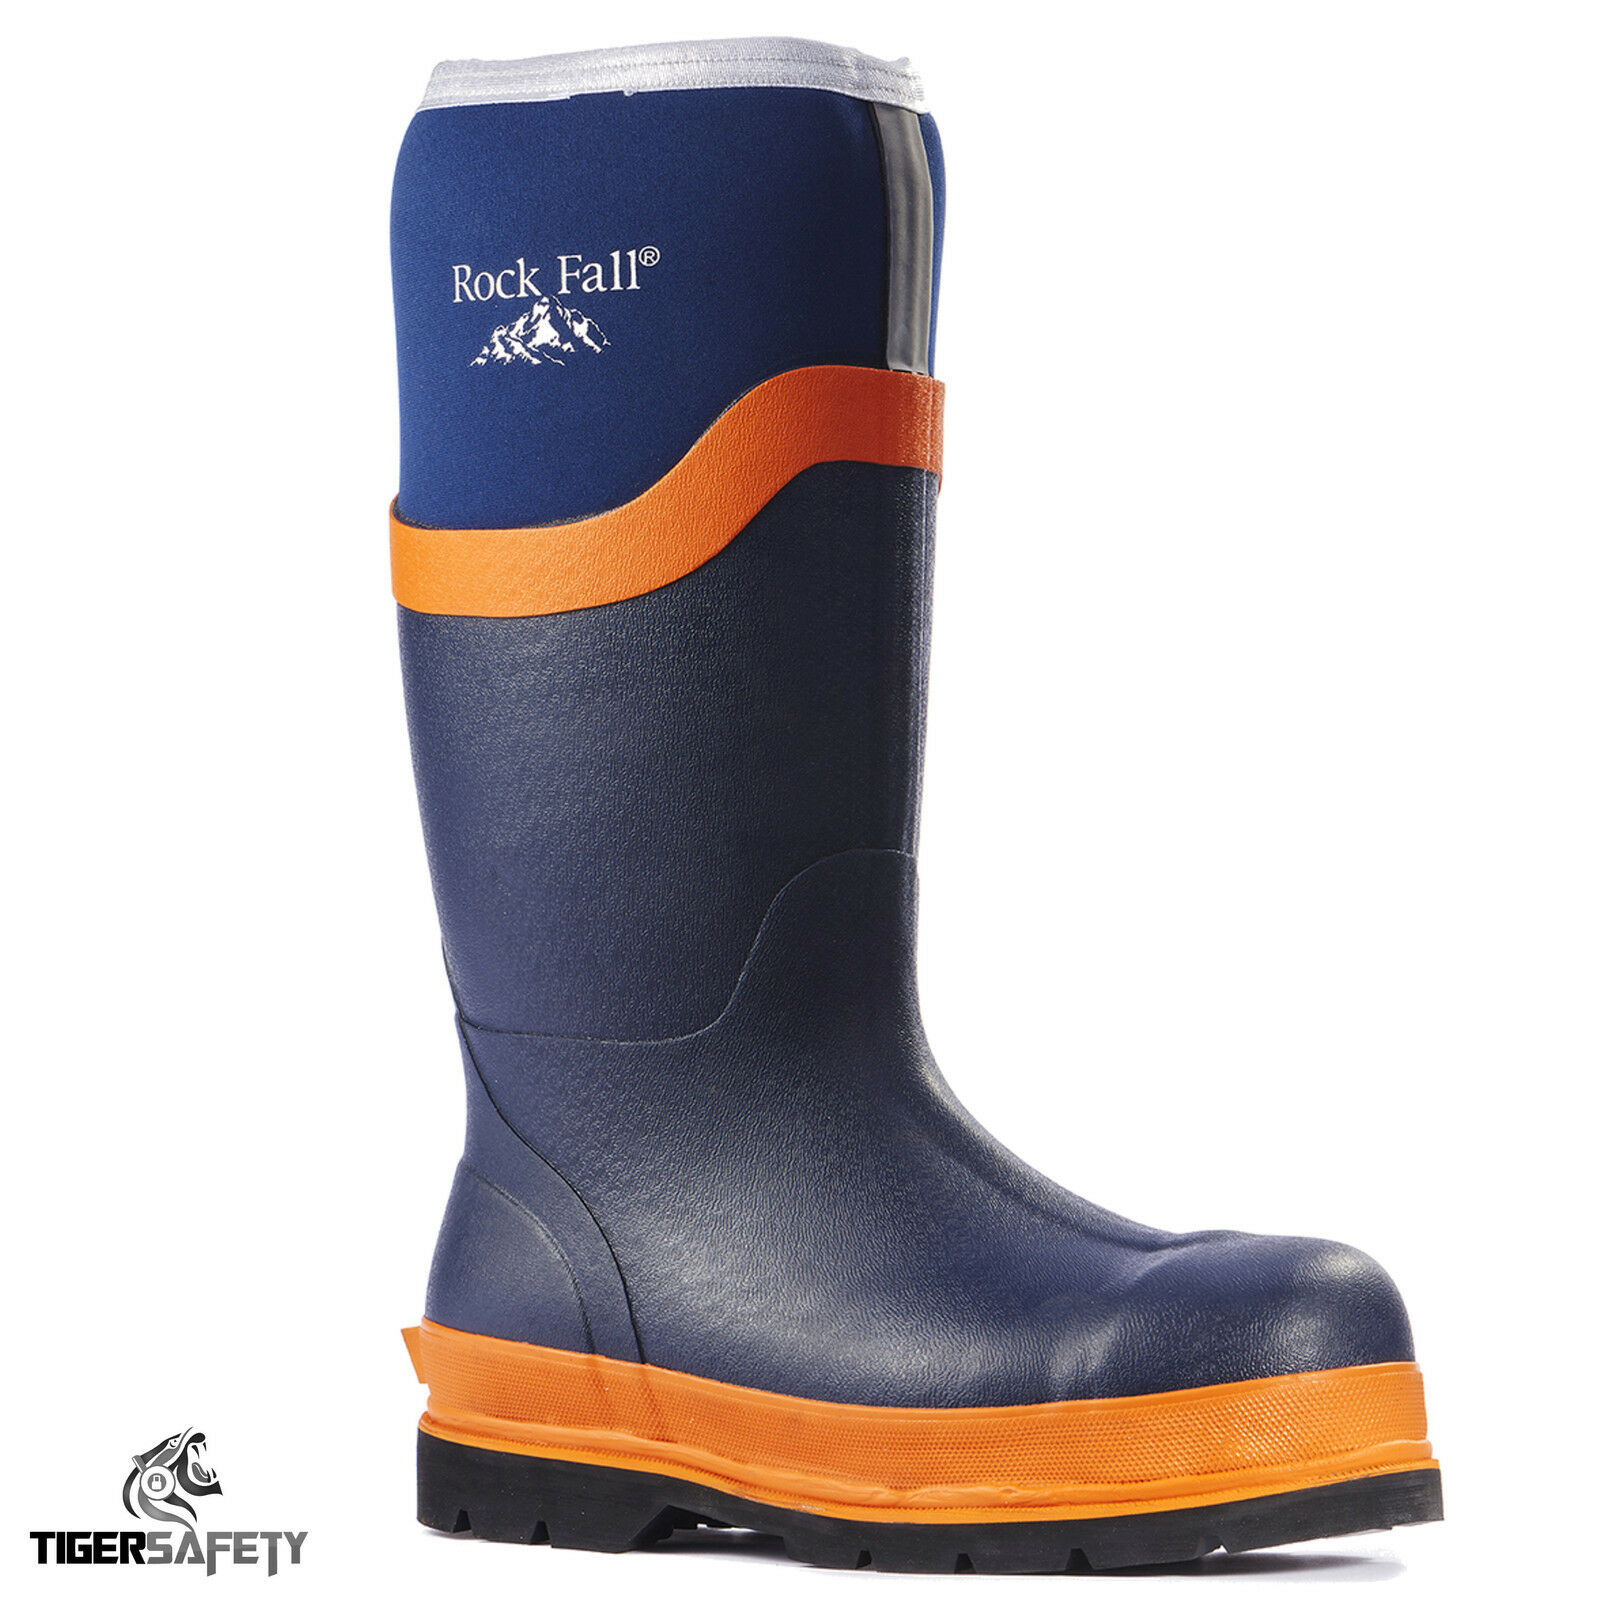 Rock Fall S5 Limo RF290 Blu Navy S5 Fall Neoprene isolato di sicurezza Stivali in PPE daf768